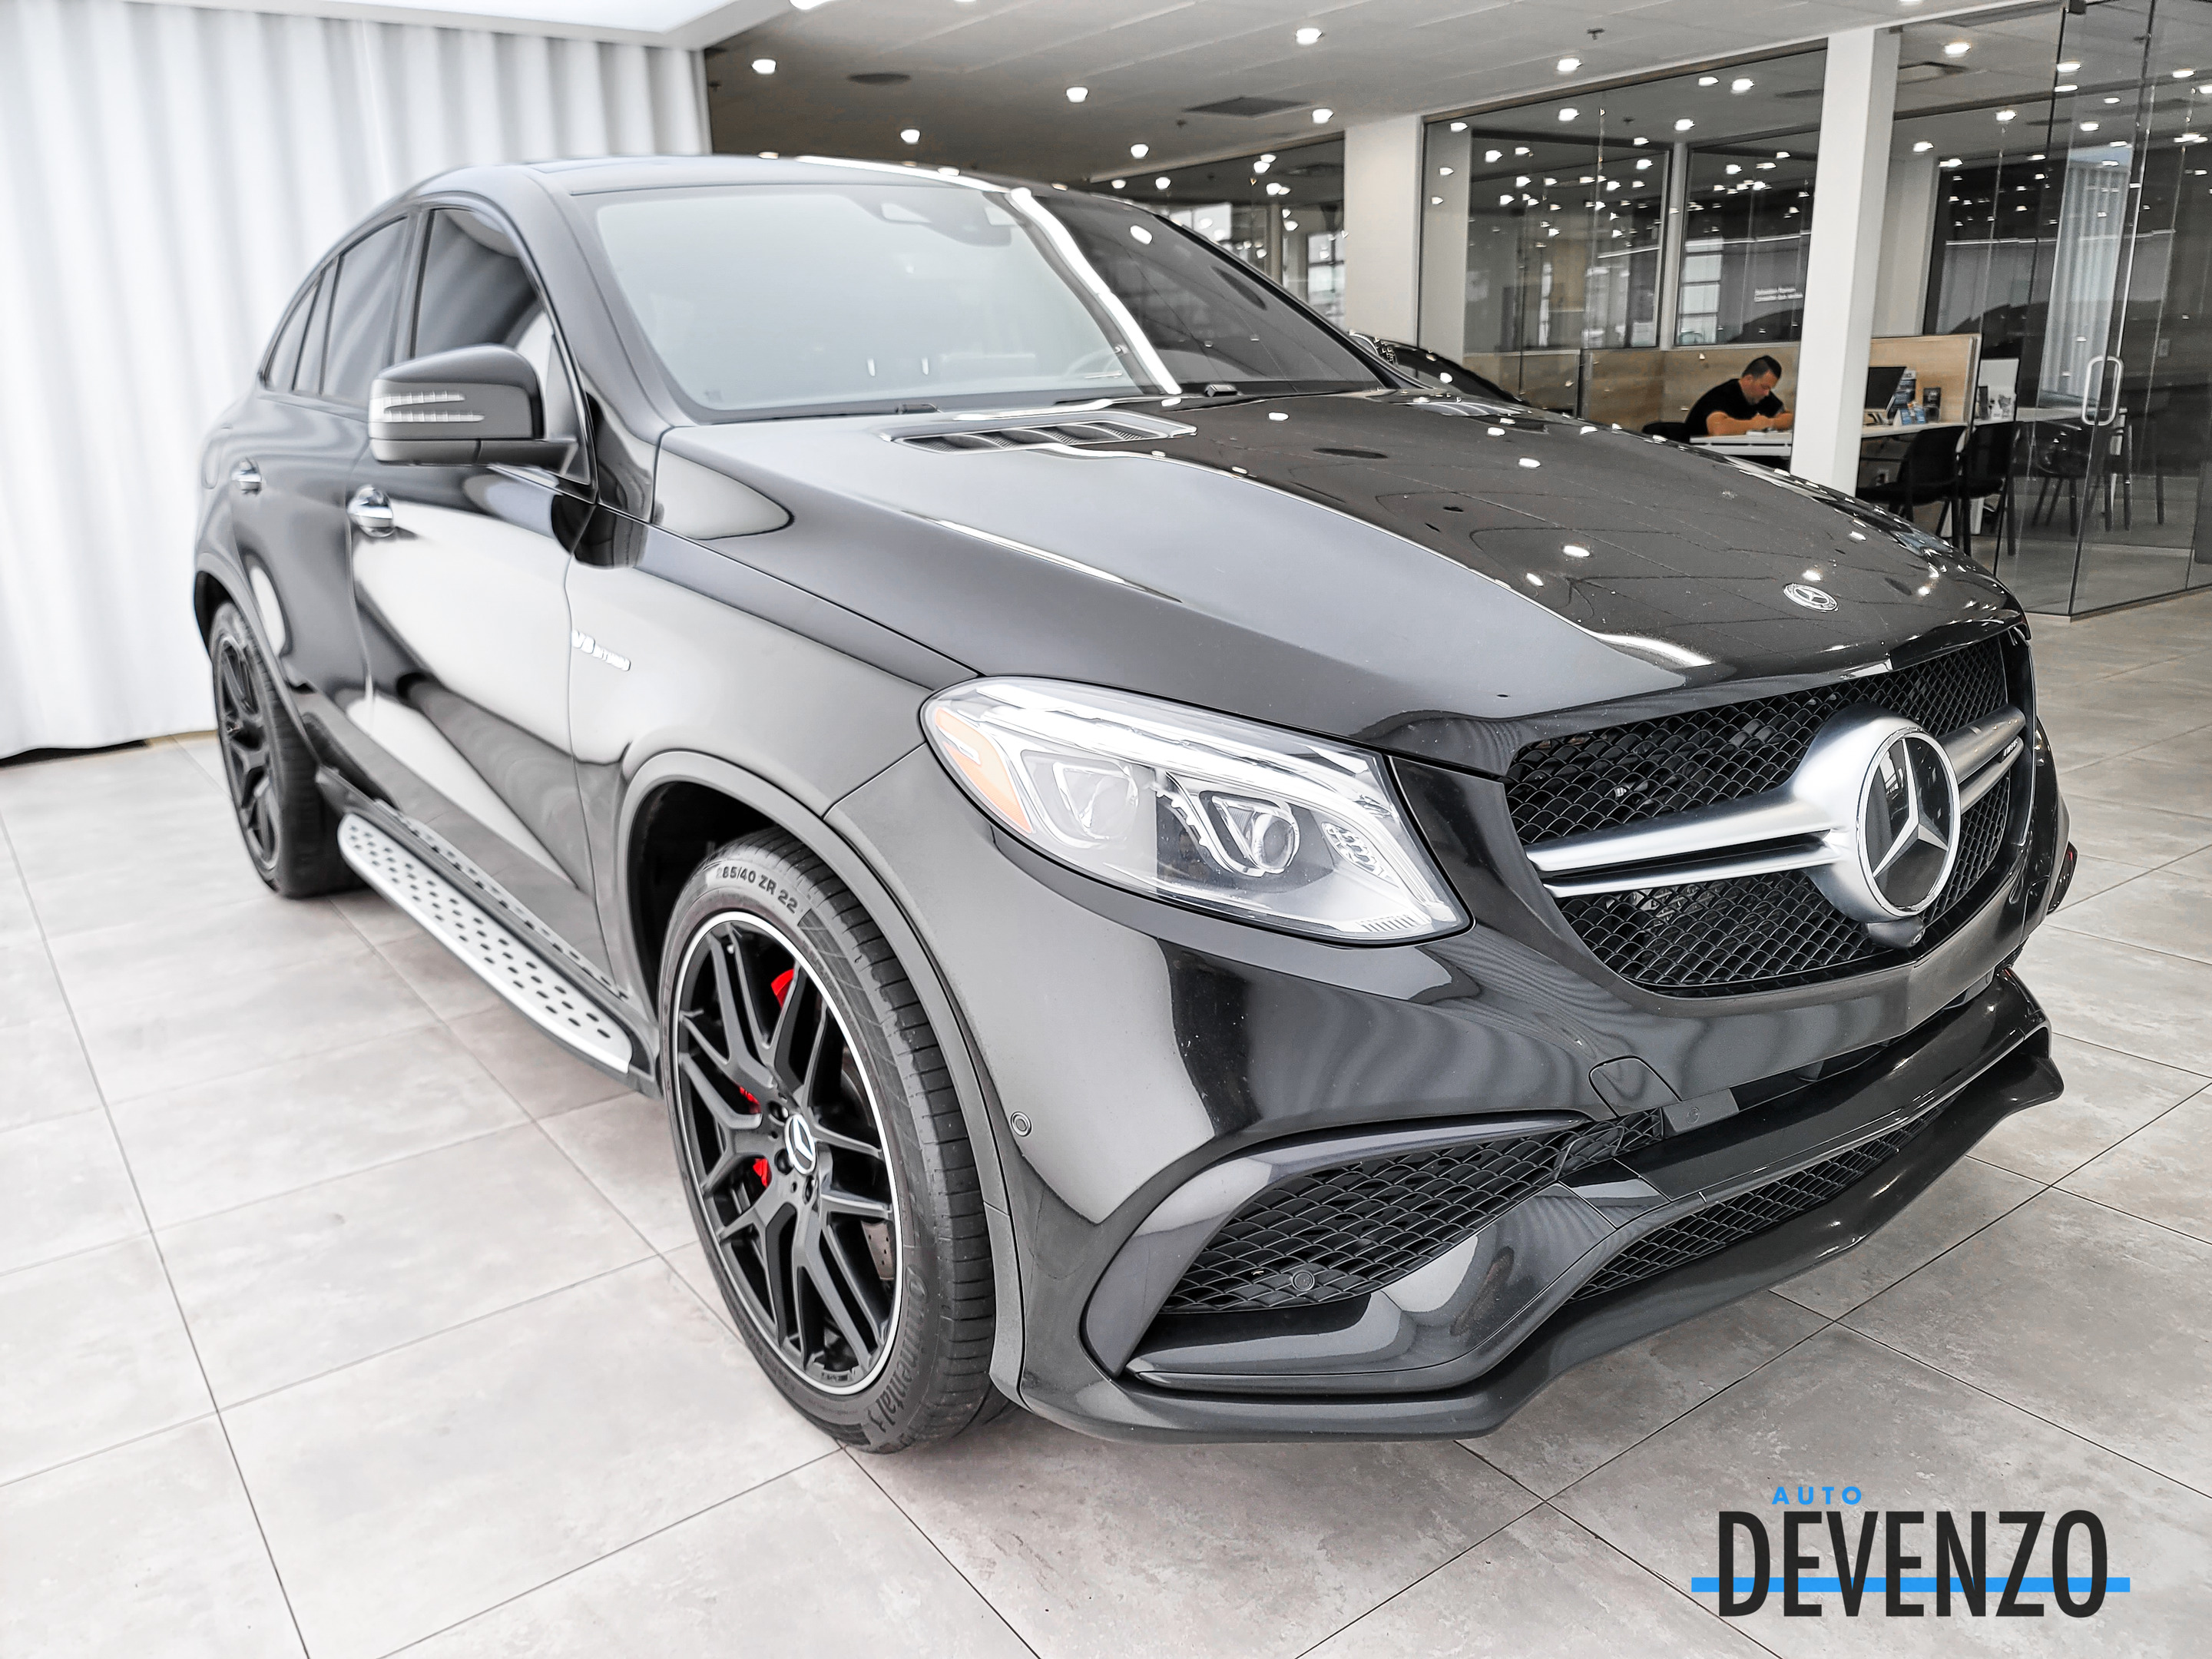 2018 Mercedes-Benz GLE-Class AMG GLE63 S 4MATIC Coupe Intelligent Drive complet